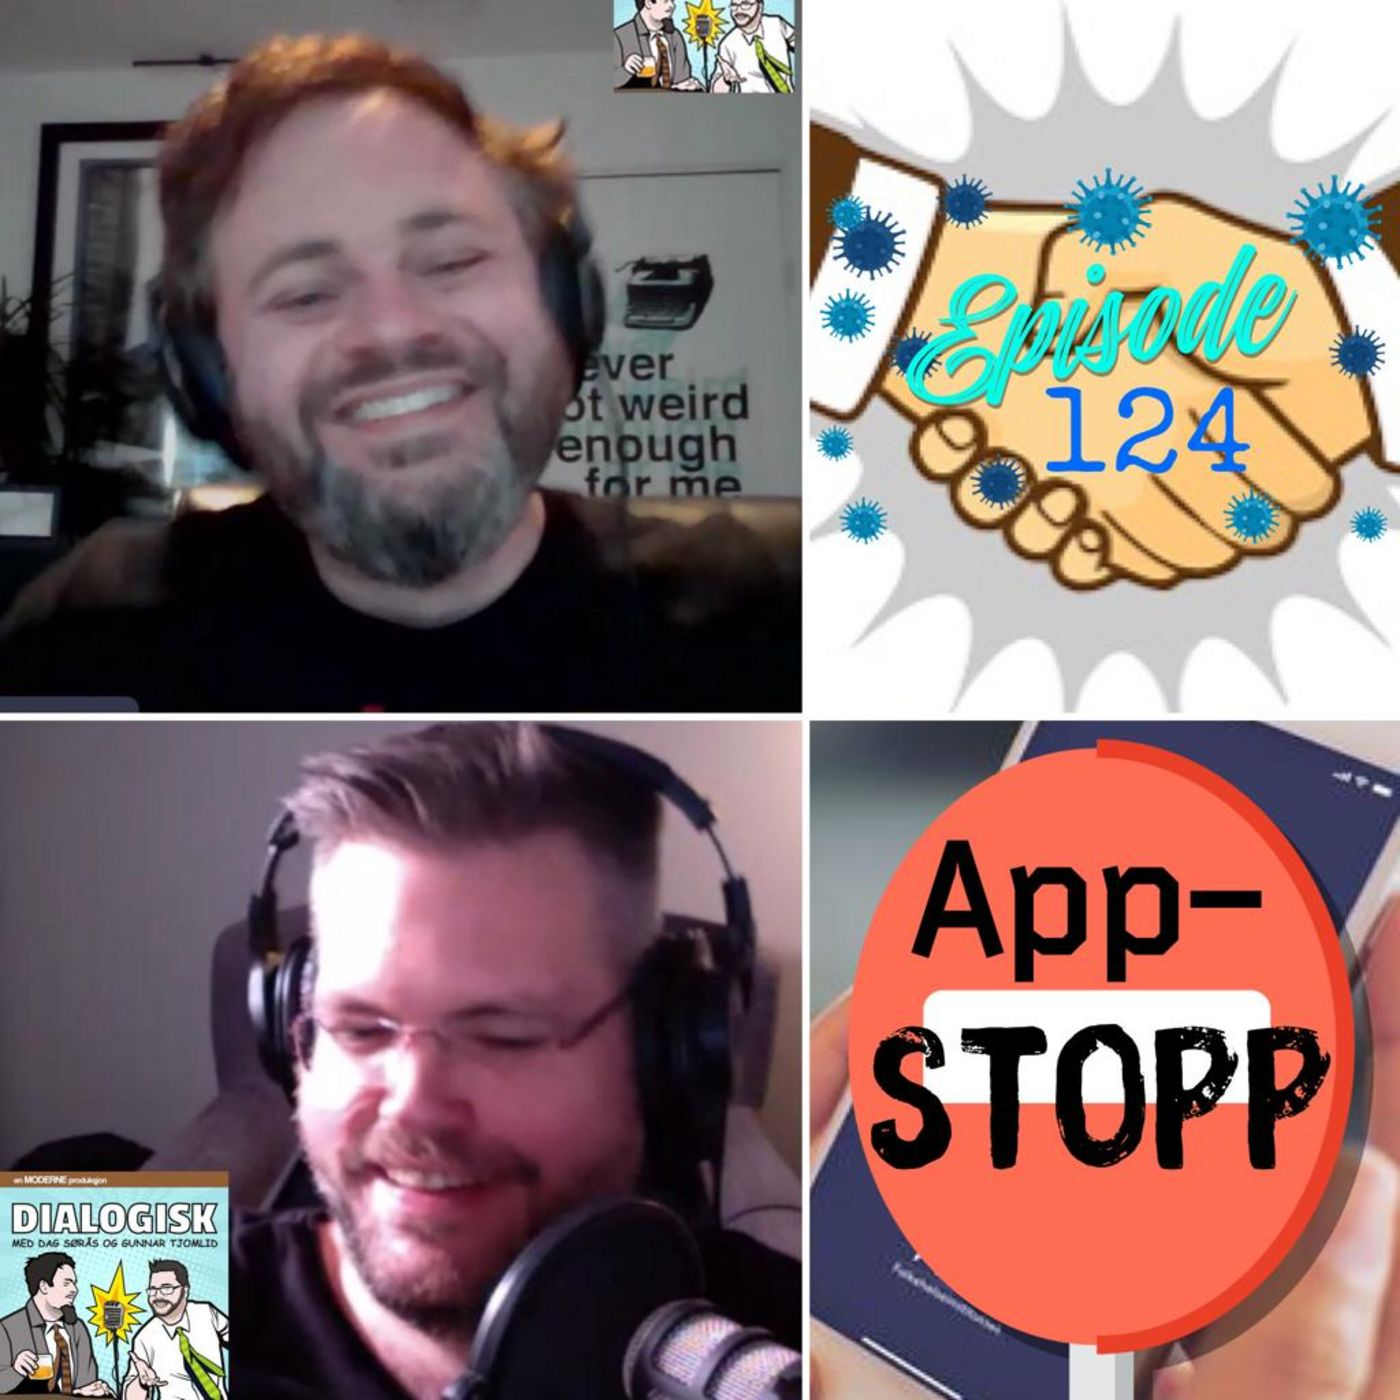 Episode 124: App-stopp